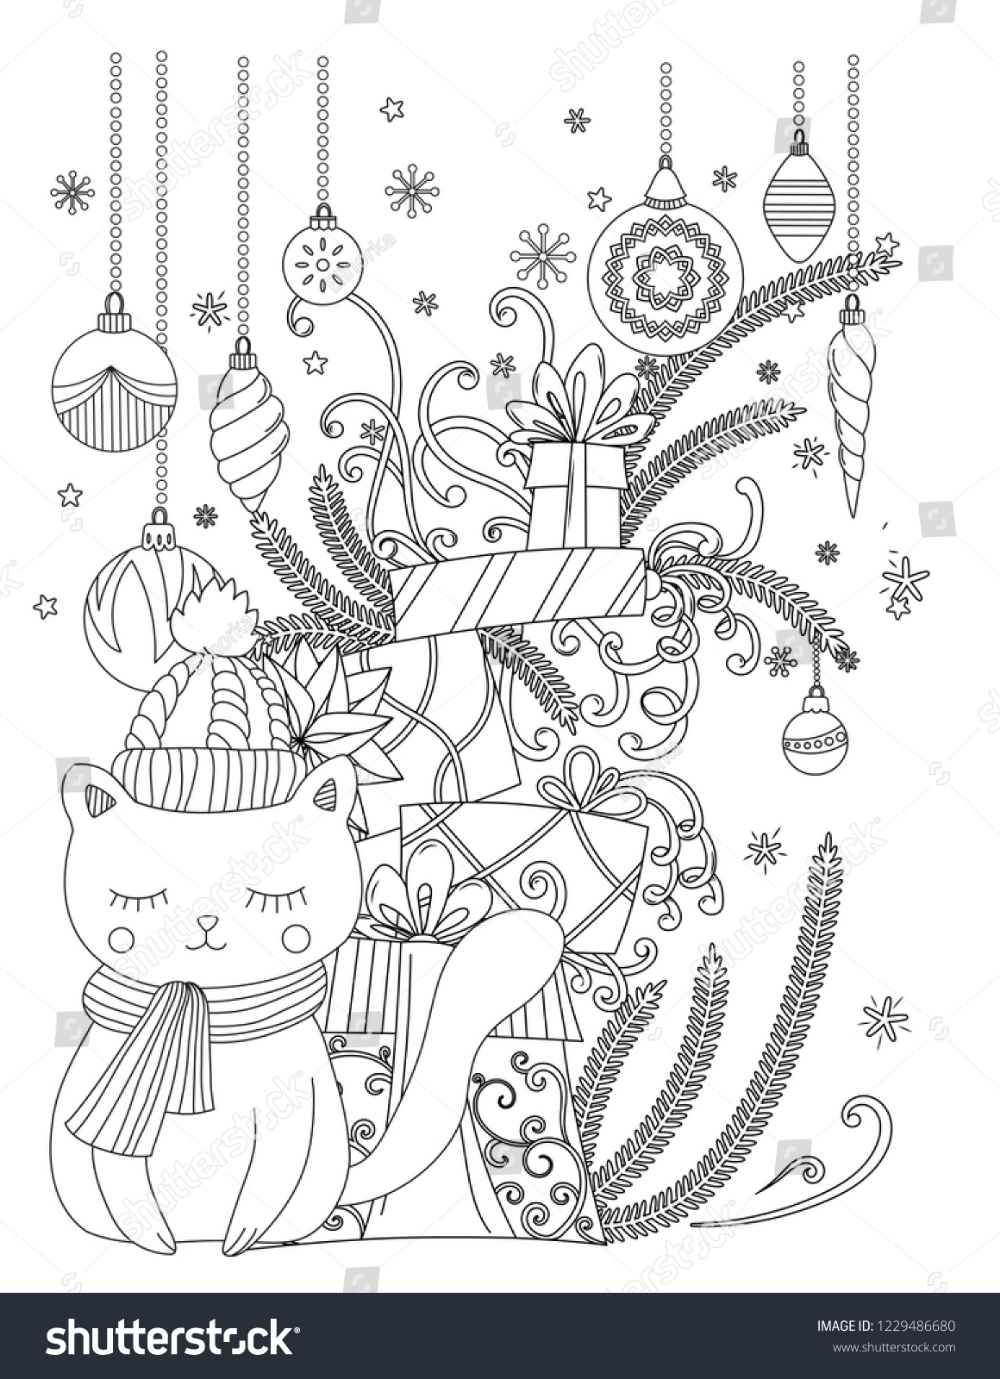 Christmas Coloring Page Kids Adults Cute Stock Illustration 1229486680 Holiday Coloring Book Free Christmas Coloring Pages Coloring Pages Inspirational